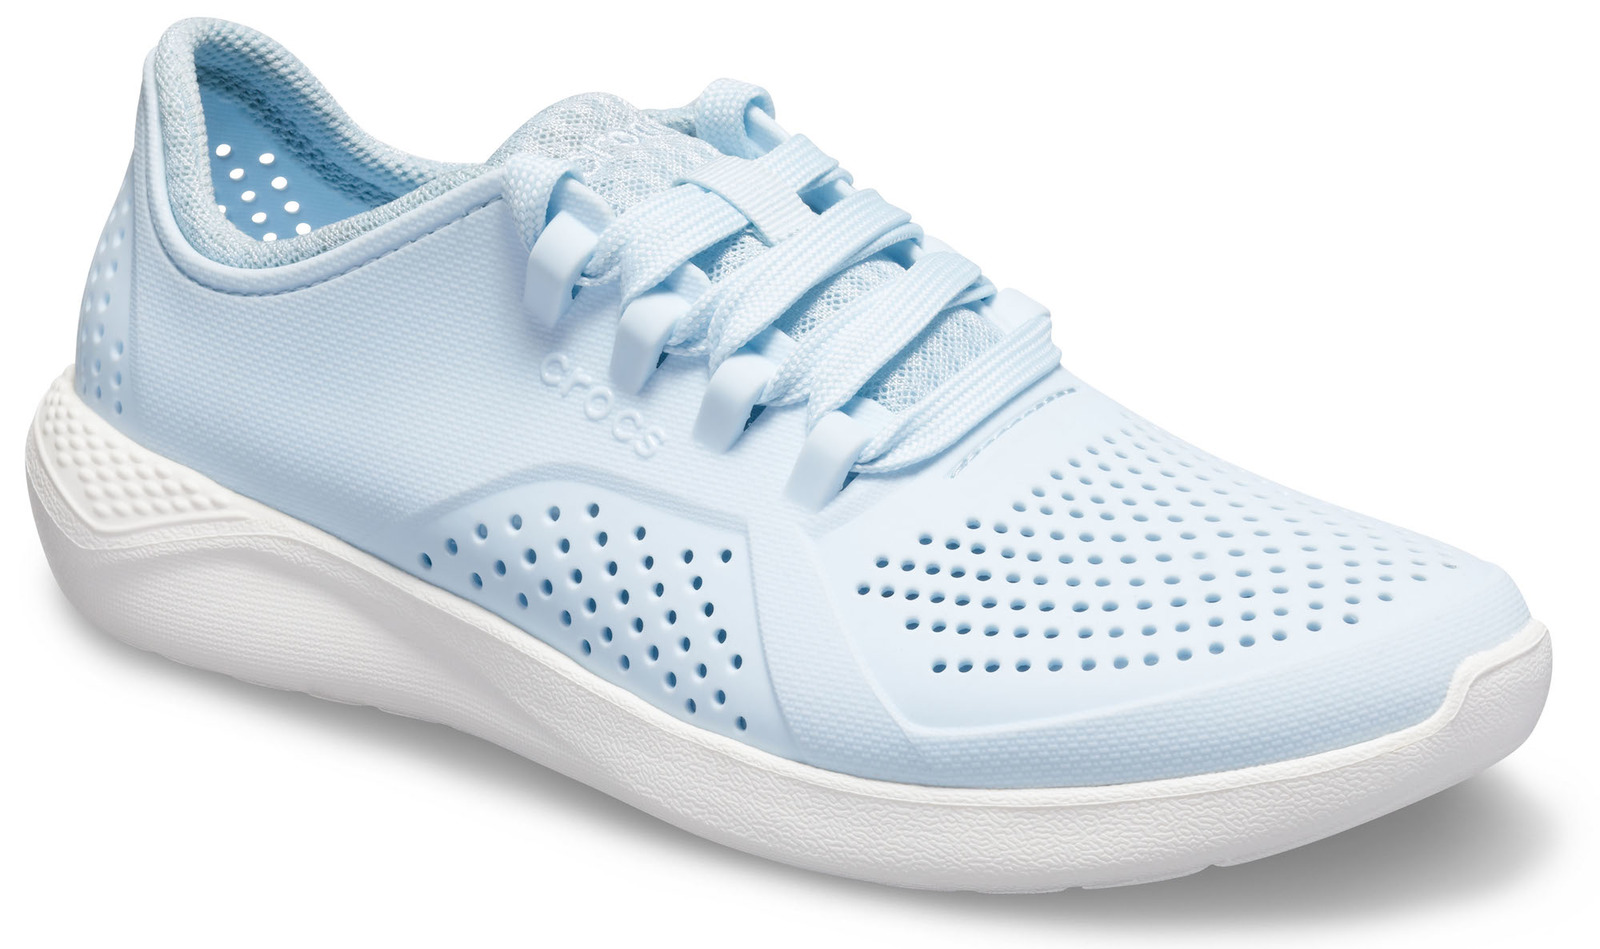 Crocs blue sneakers LiteRide pacer Mineral Blue/White